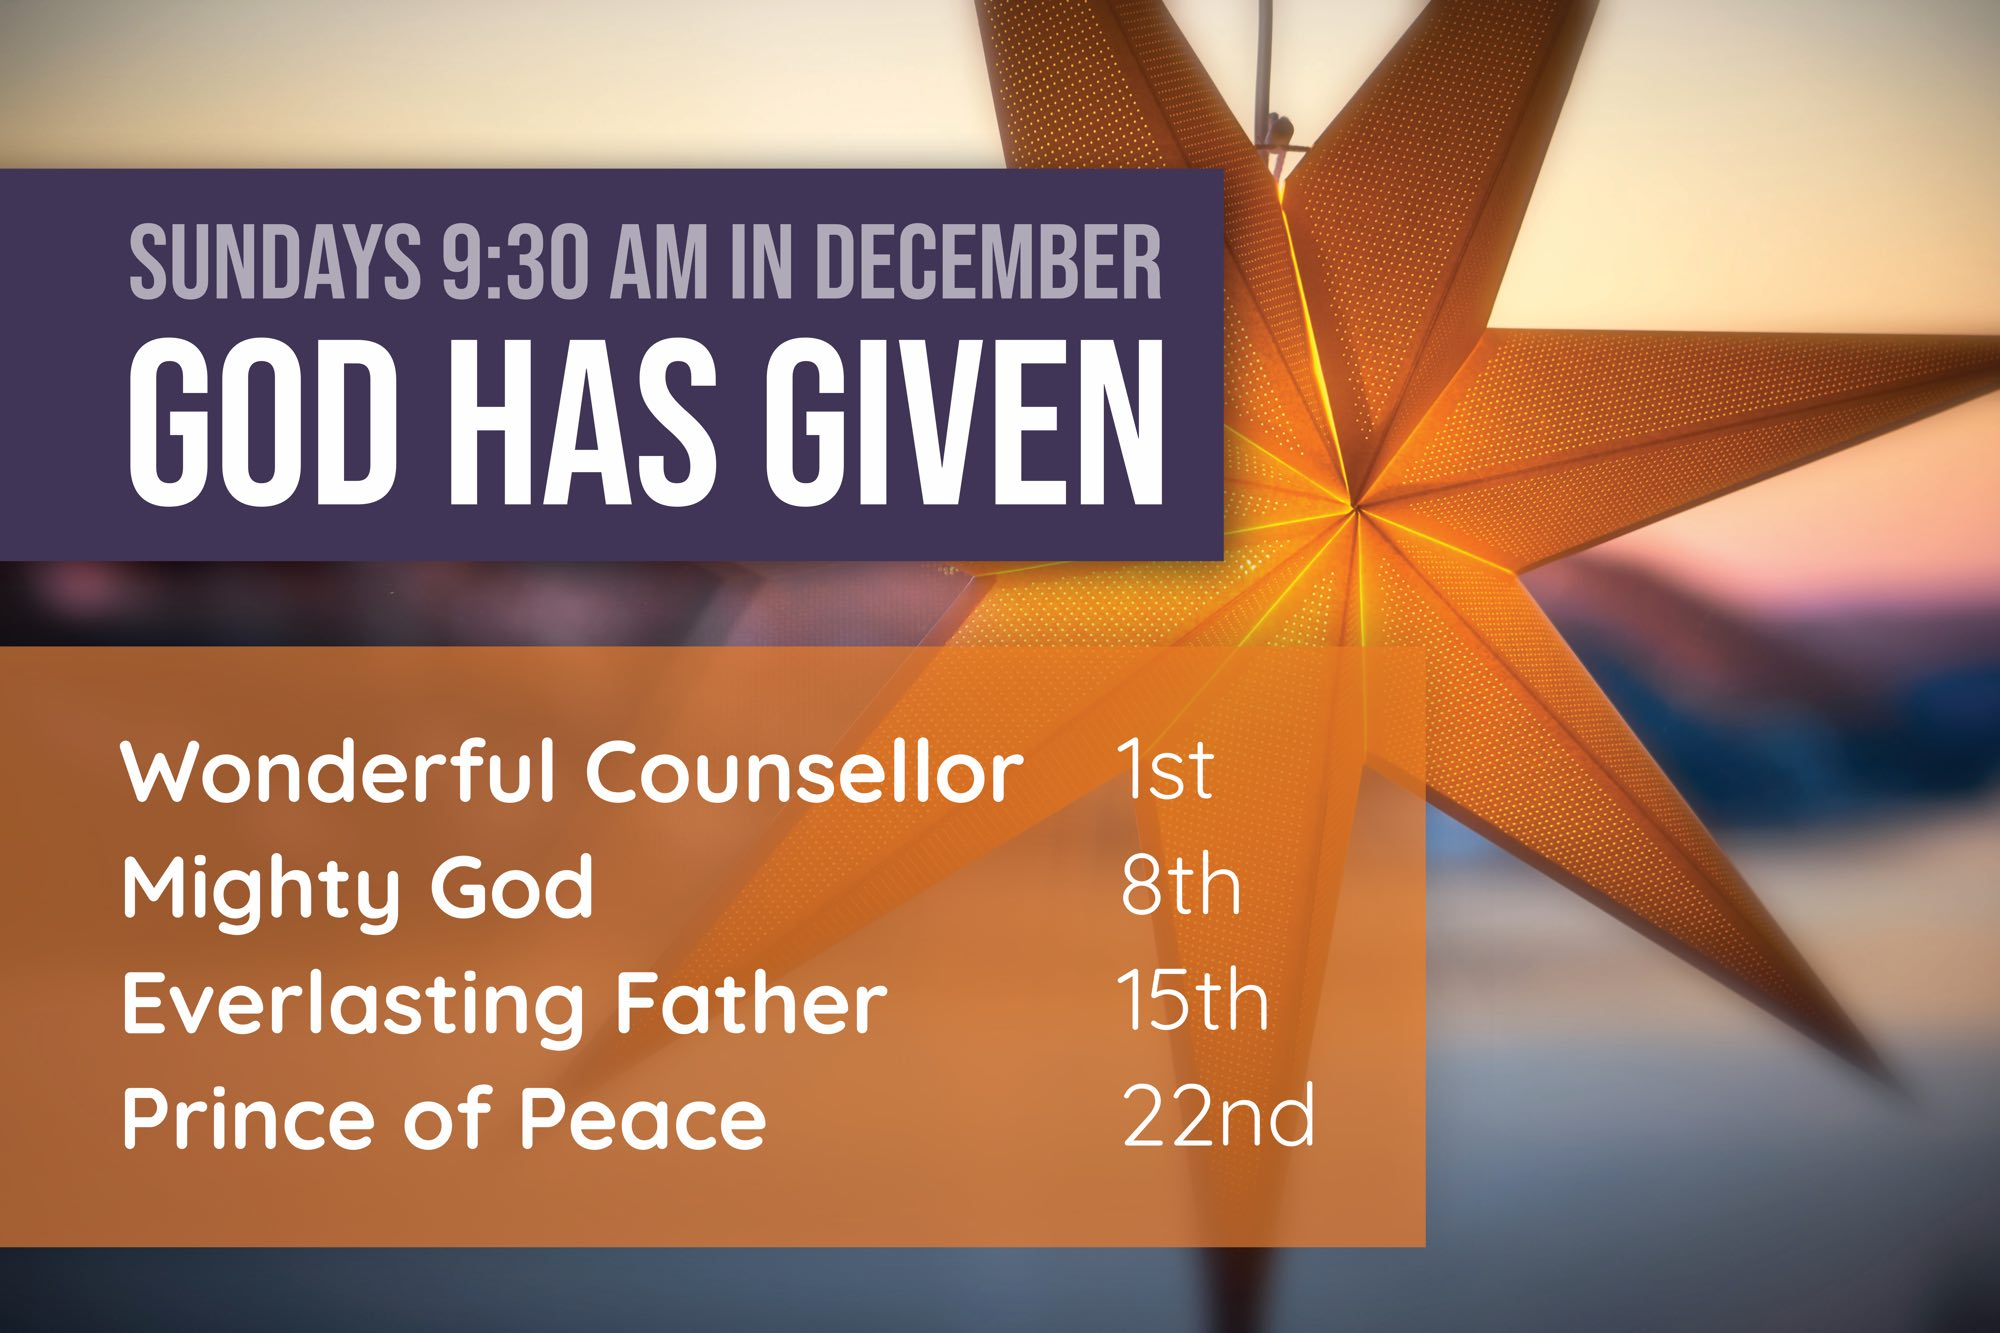 Sundays 9:30am in December: God has Given